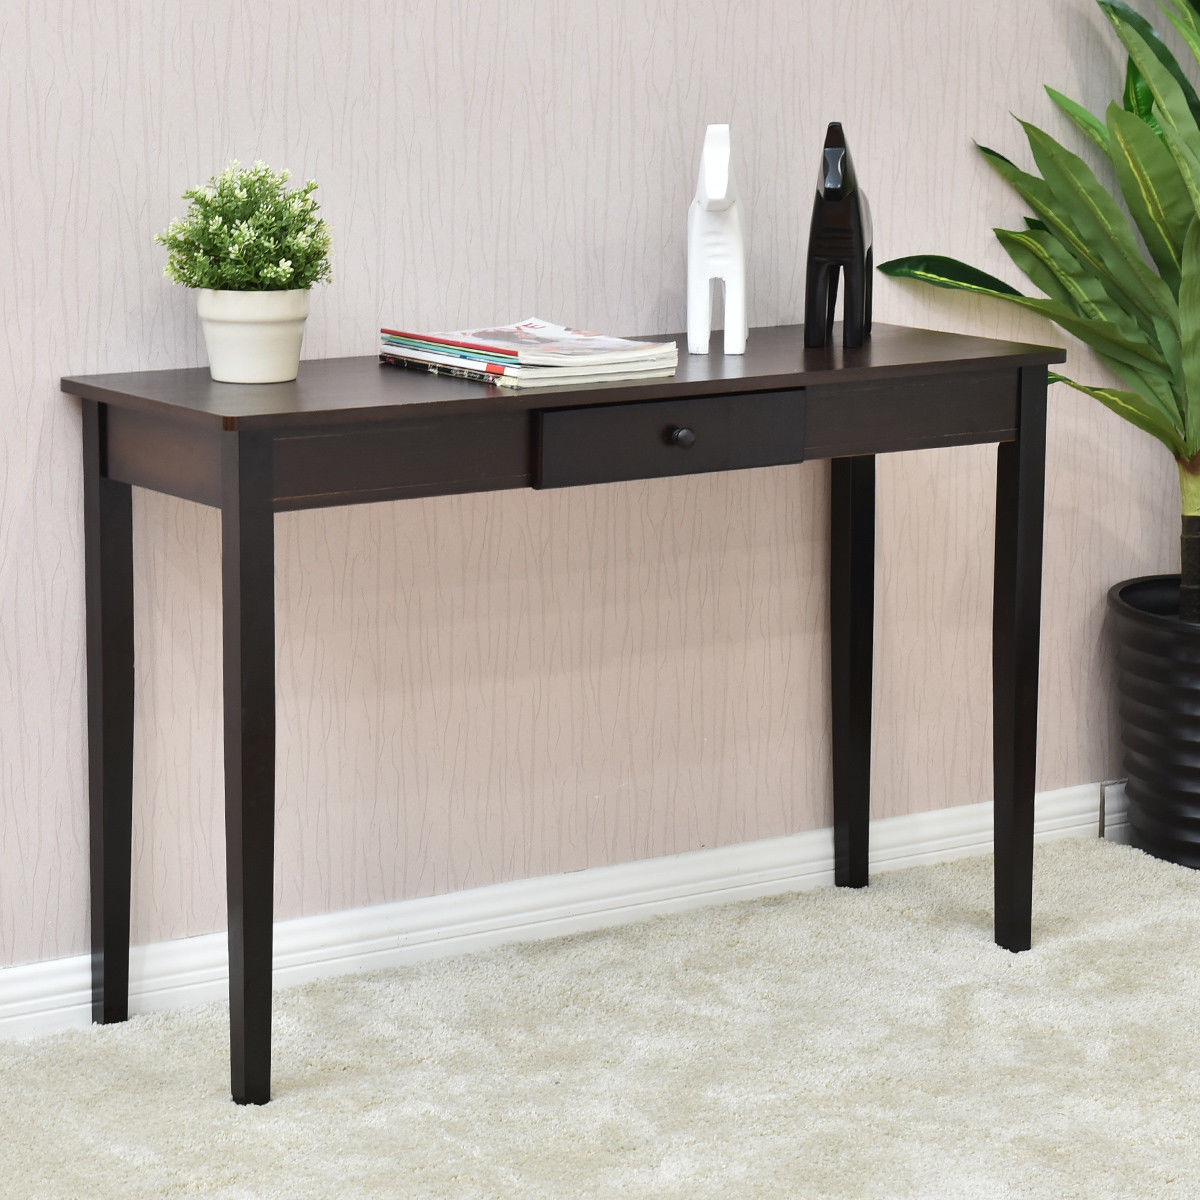 giantex console table entry hallway desk entryway side sofa accent with drawer modern wood living room furniture diy cocktail chest coffee and metal end paper tablecloths coby